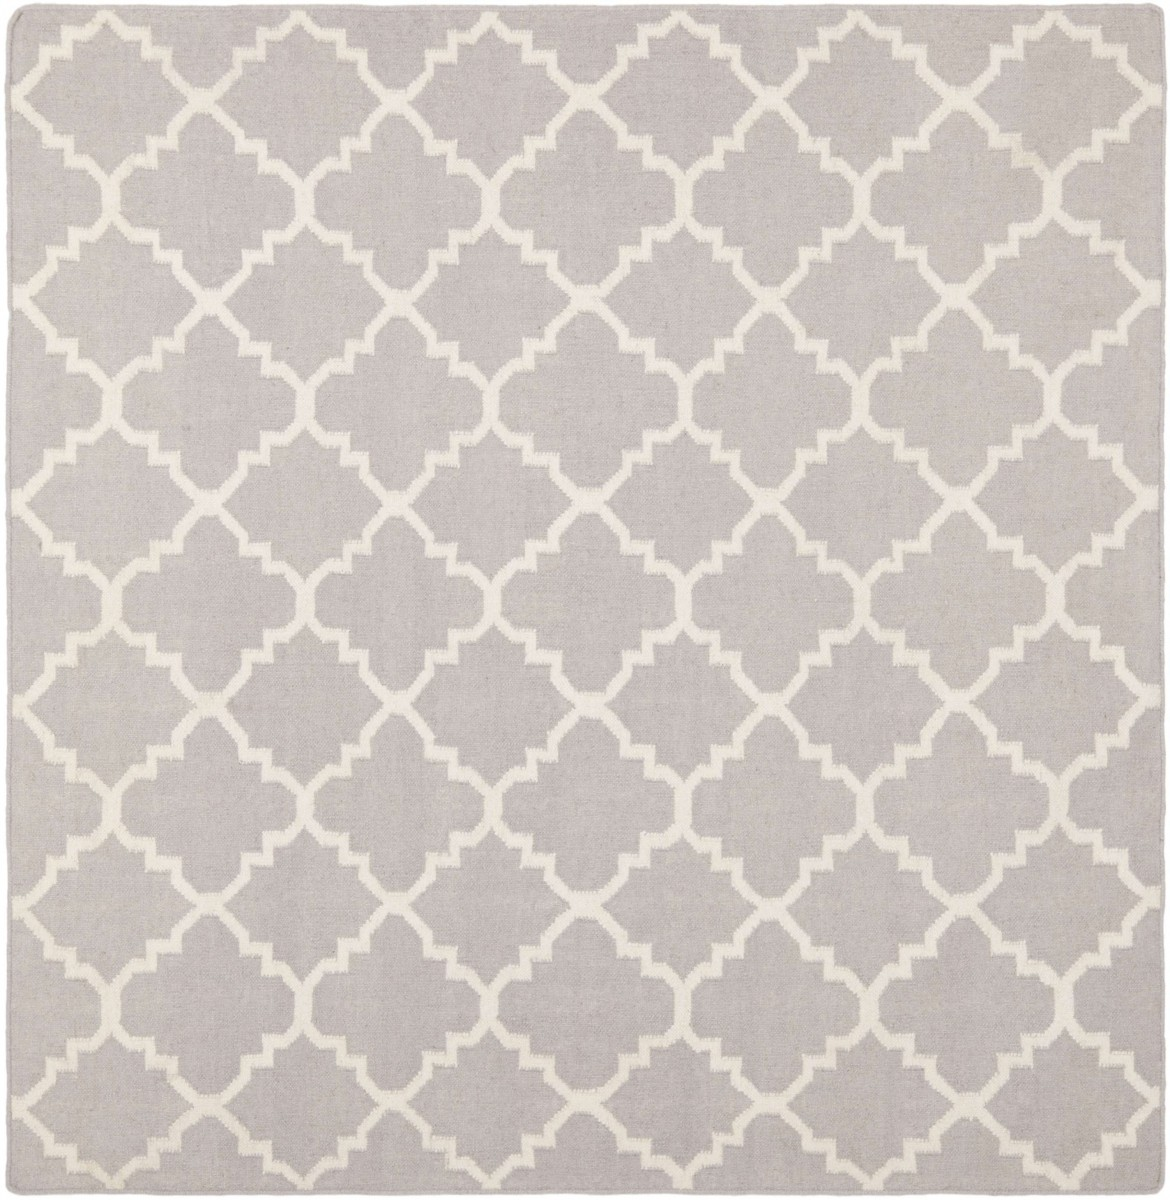 Damask Flatweave Rug: Safavieh Dhurries Flatweave Gray And Ivory 8' X 8' Square